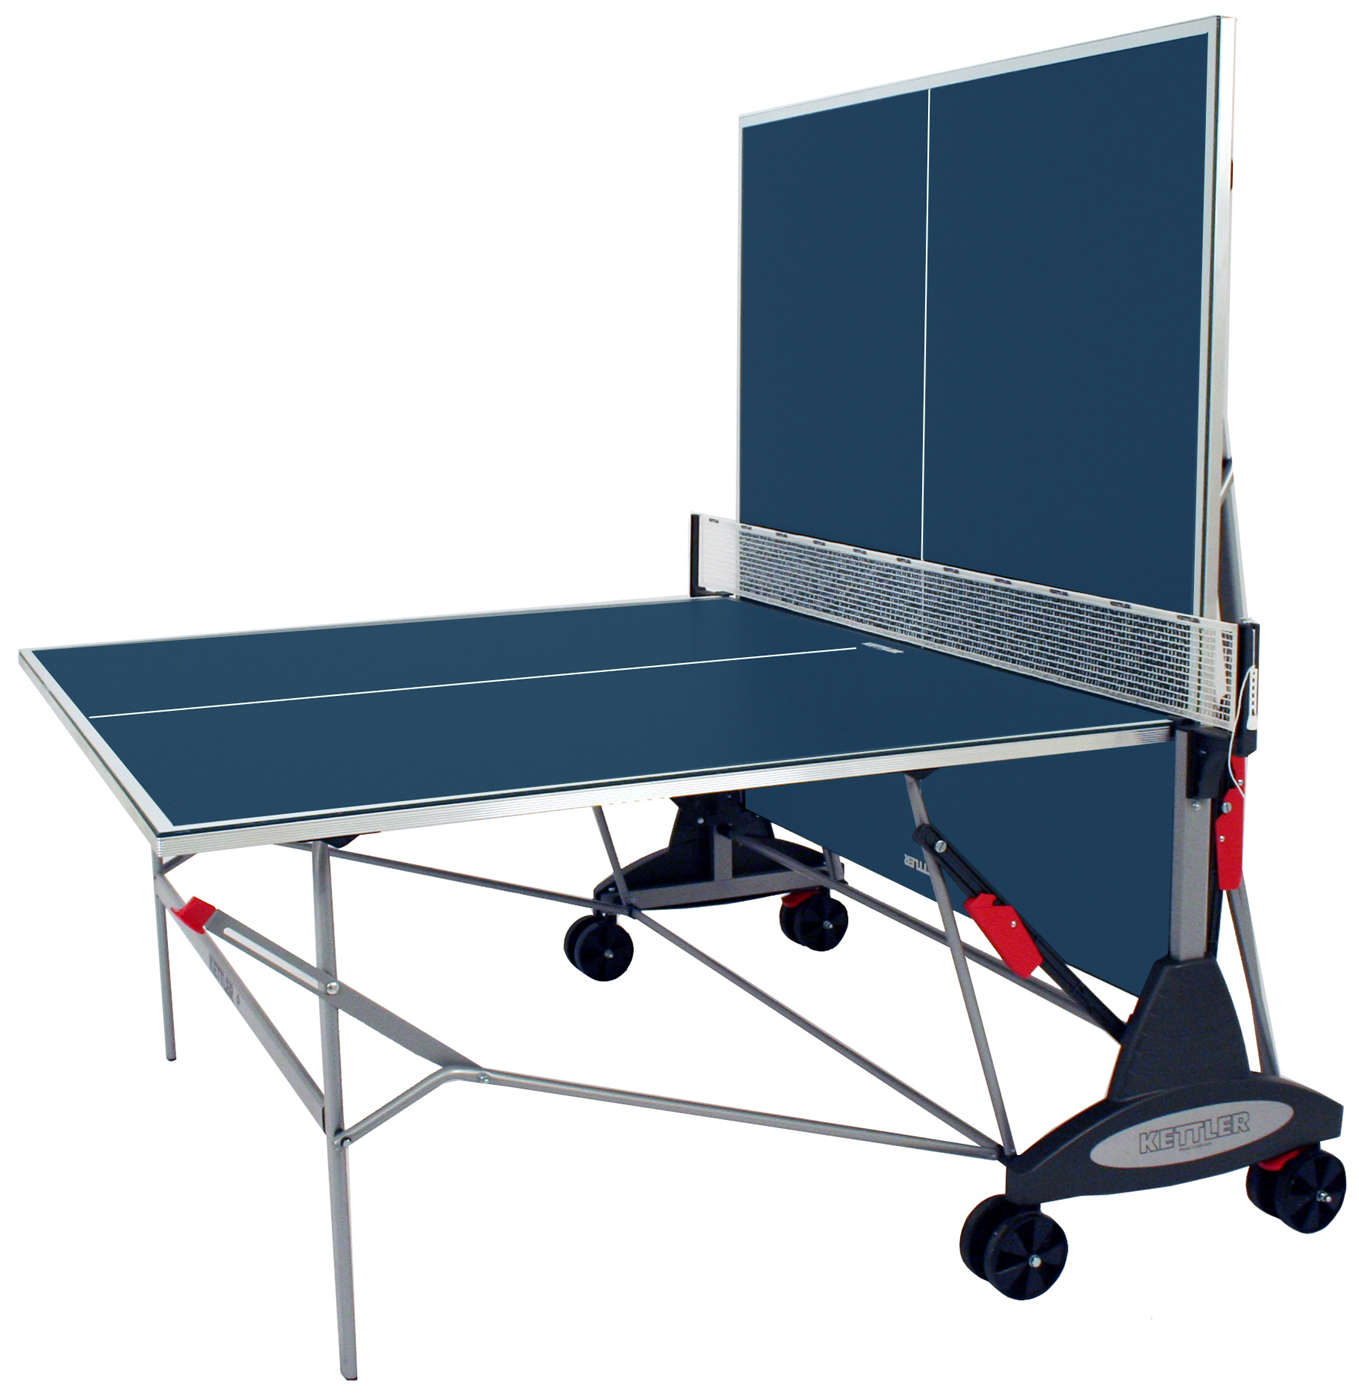 kettler stockholm gt outdoor ping pong table. Black Bedroom Furniture Sets. Home Design Ideas